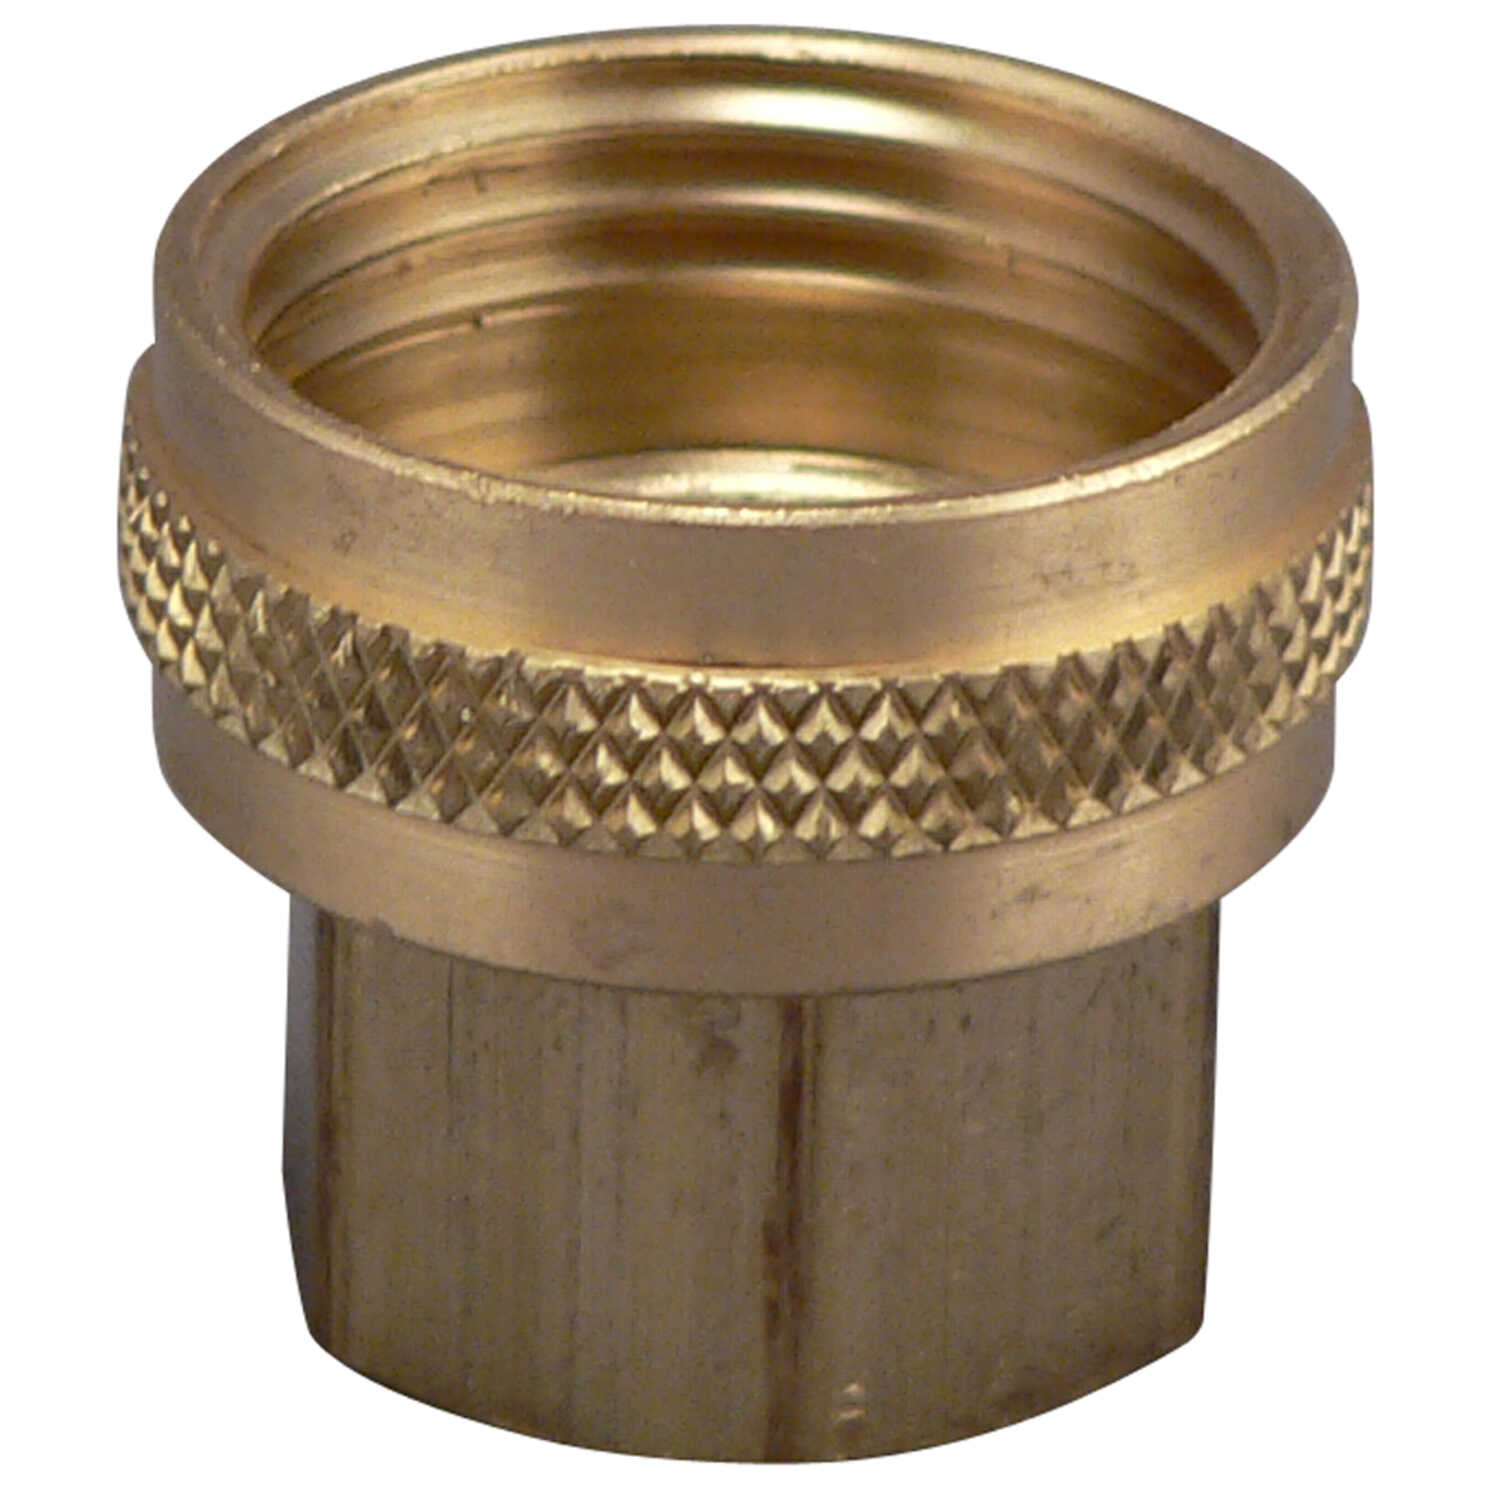 Plumb Pak  Brass  1/2 in. Dia. x 3/4 in. Dia. Swivel Hose Adapter  1 pk